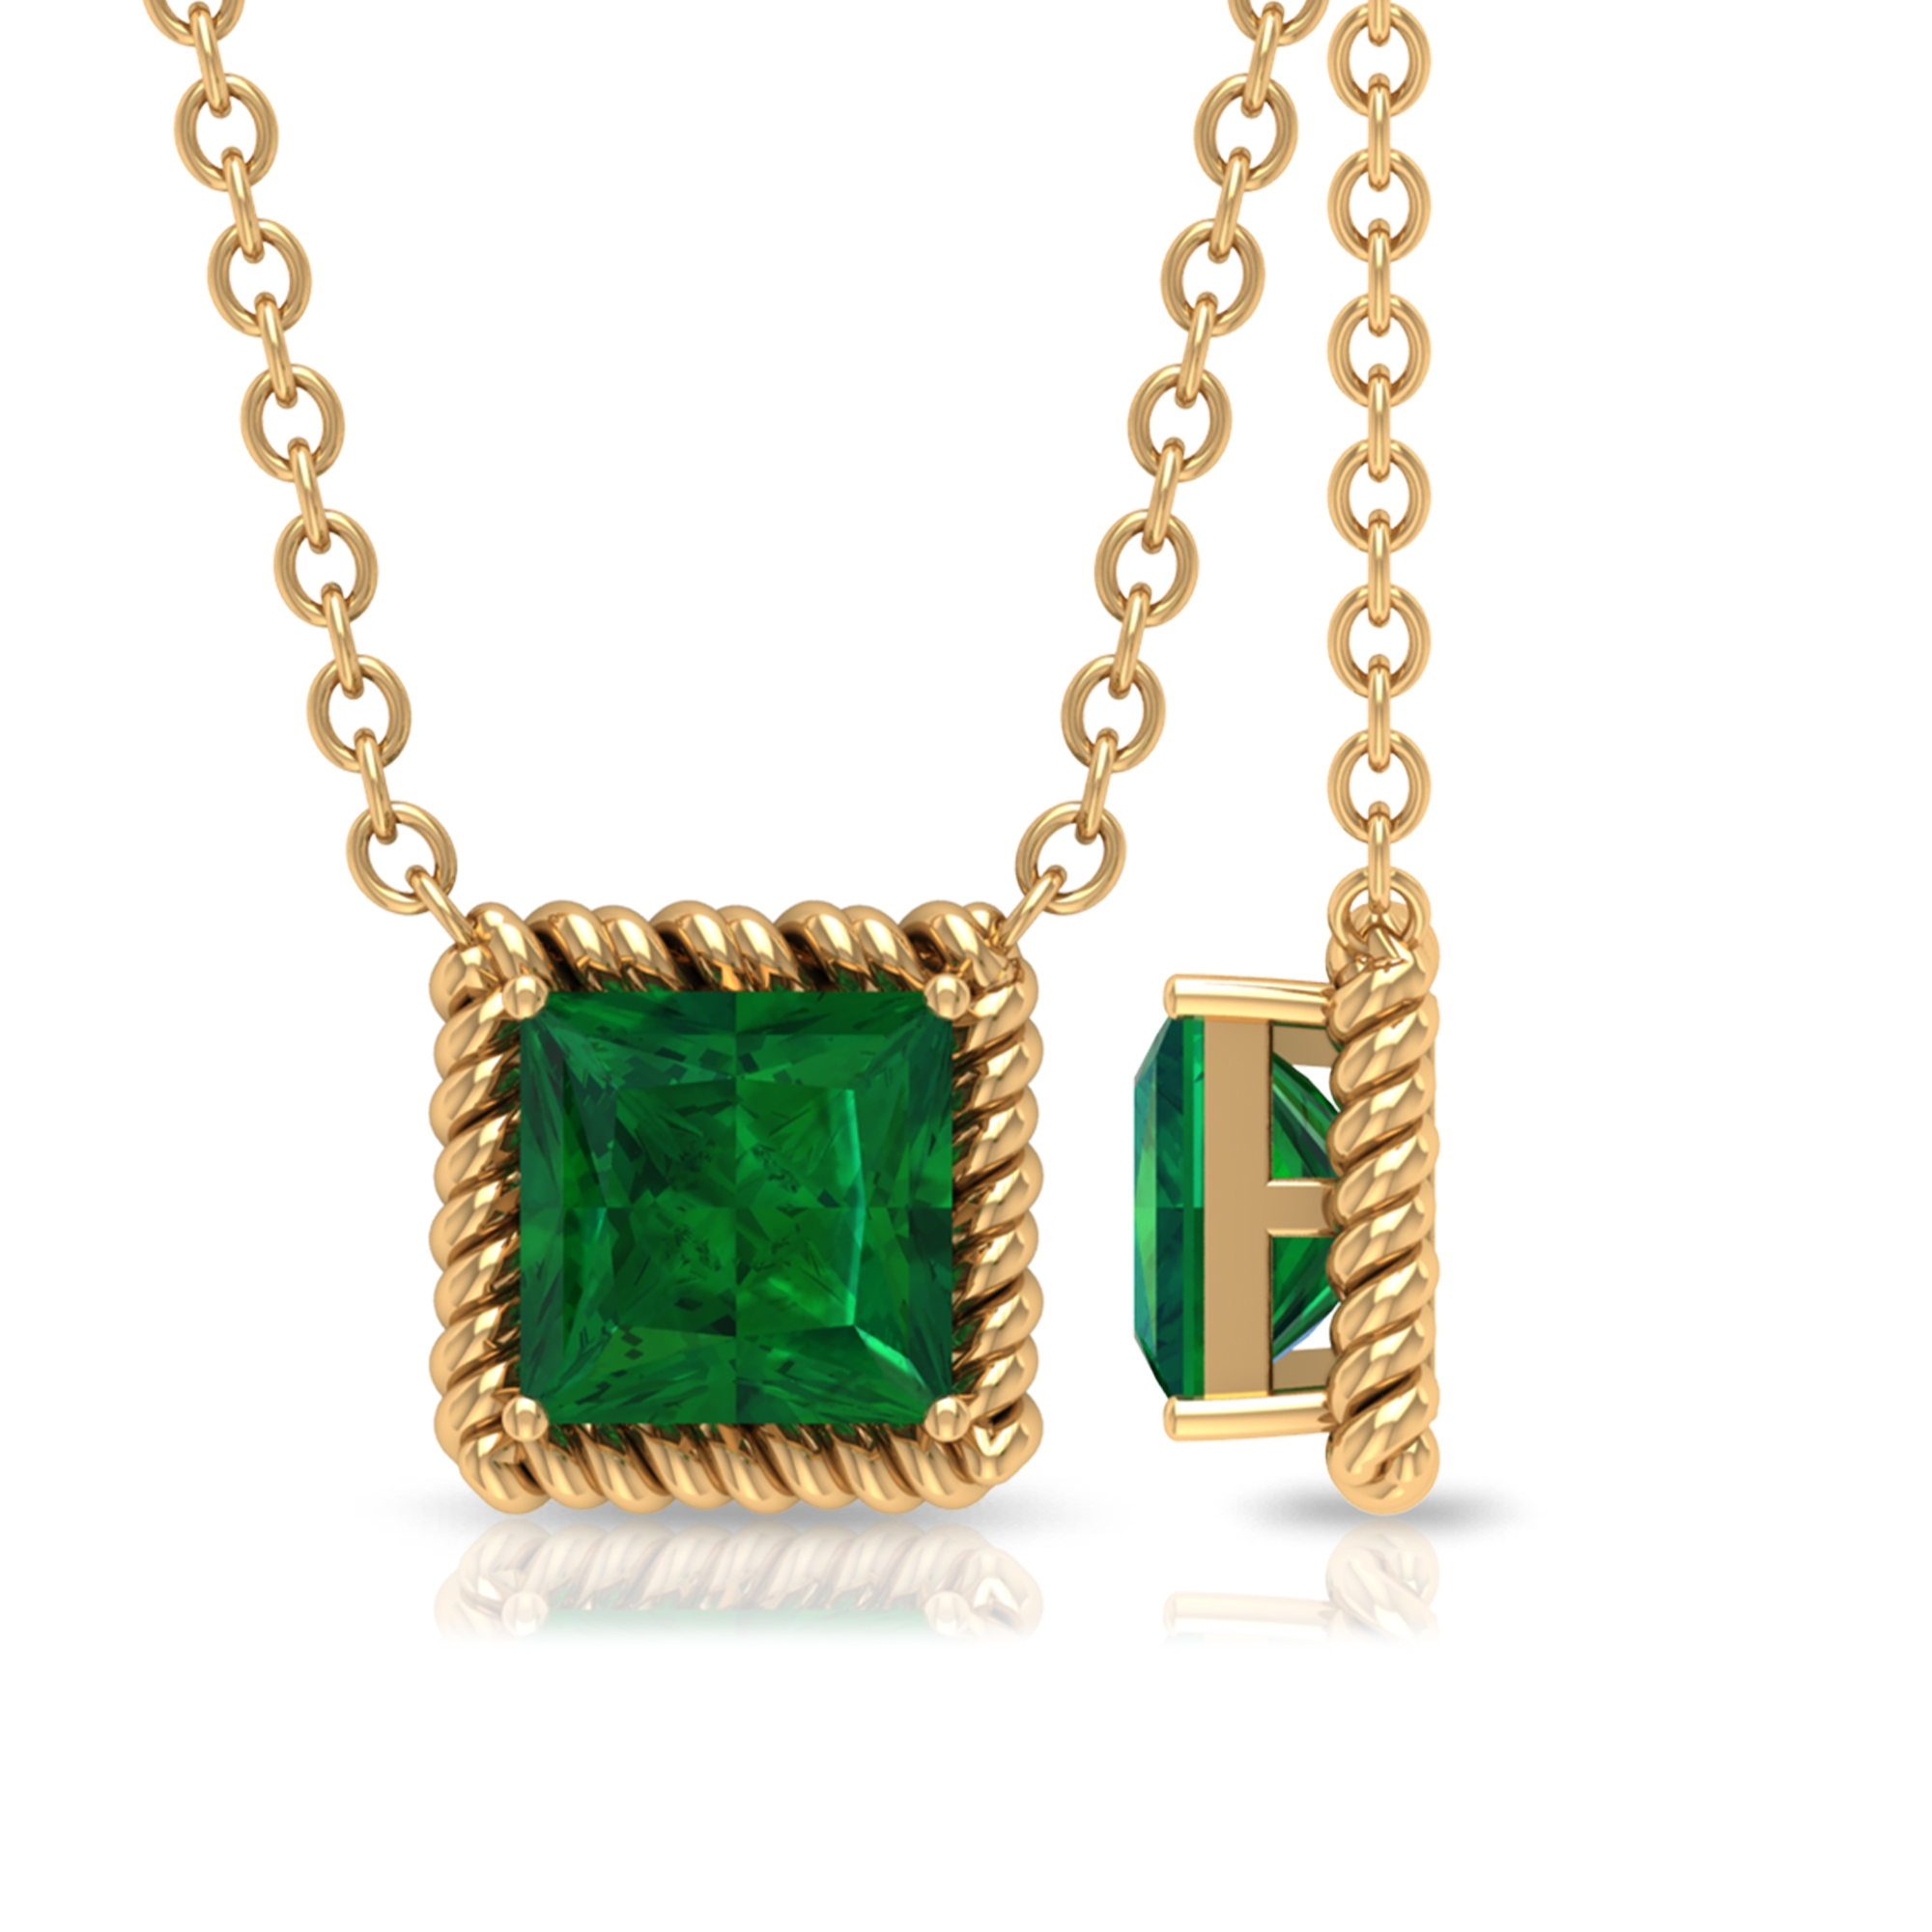 4.50 MM Princess Cut Emerald Solitaire Necklace in Prong Setting with Rope Frame